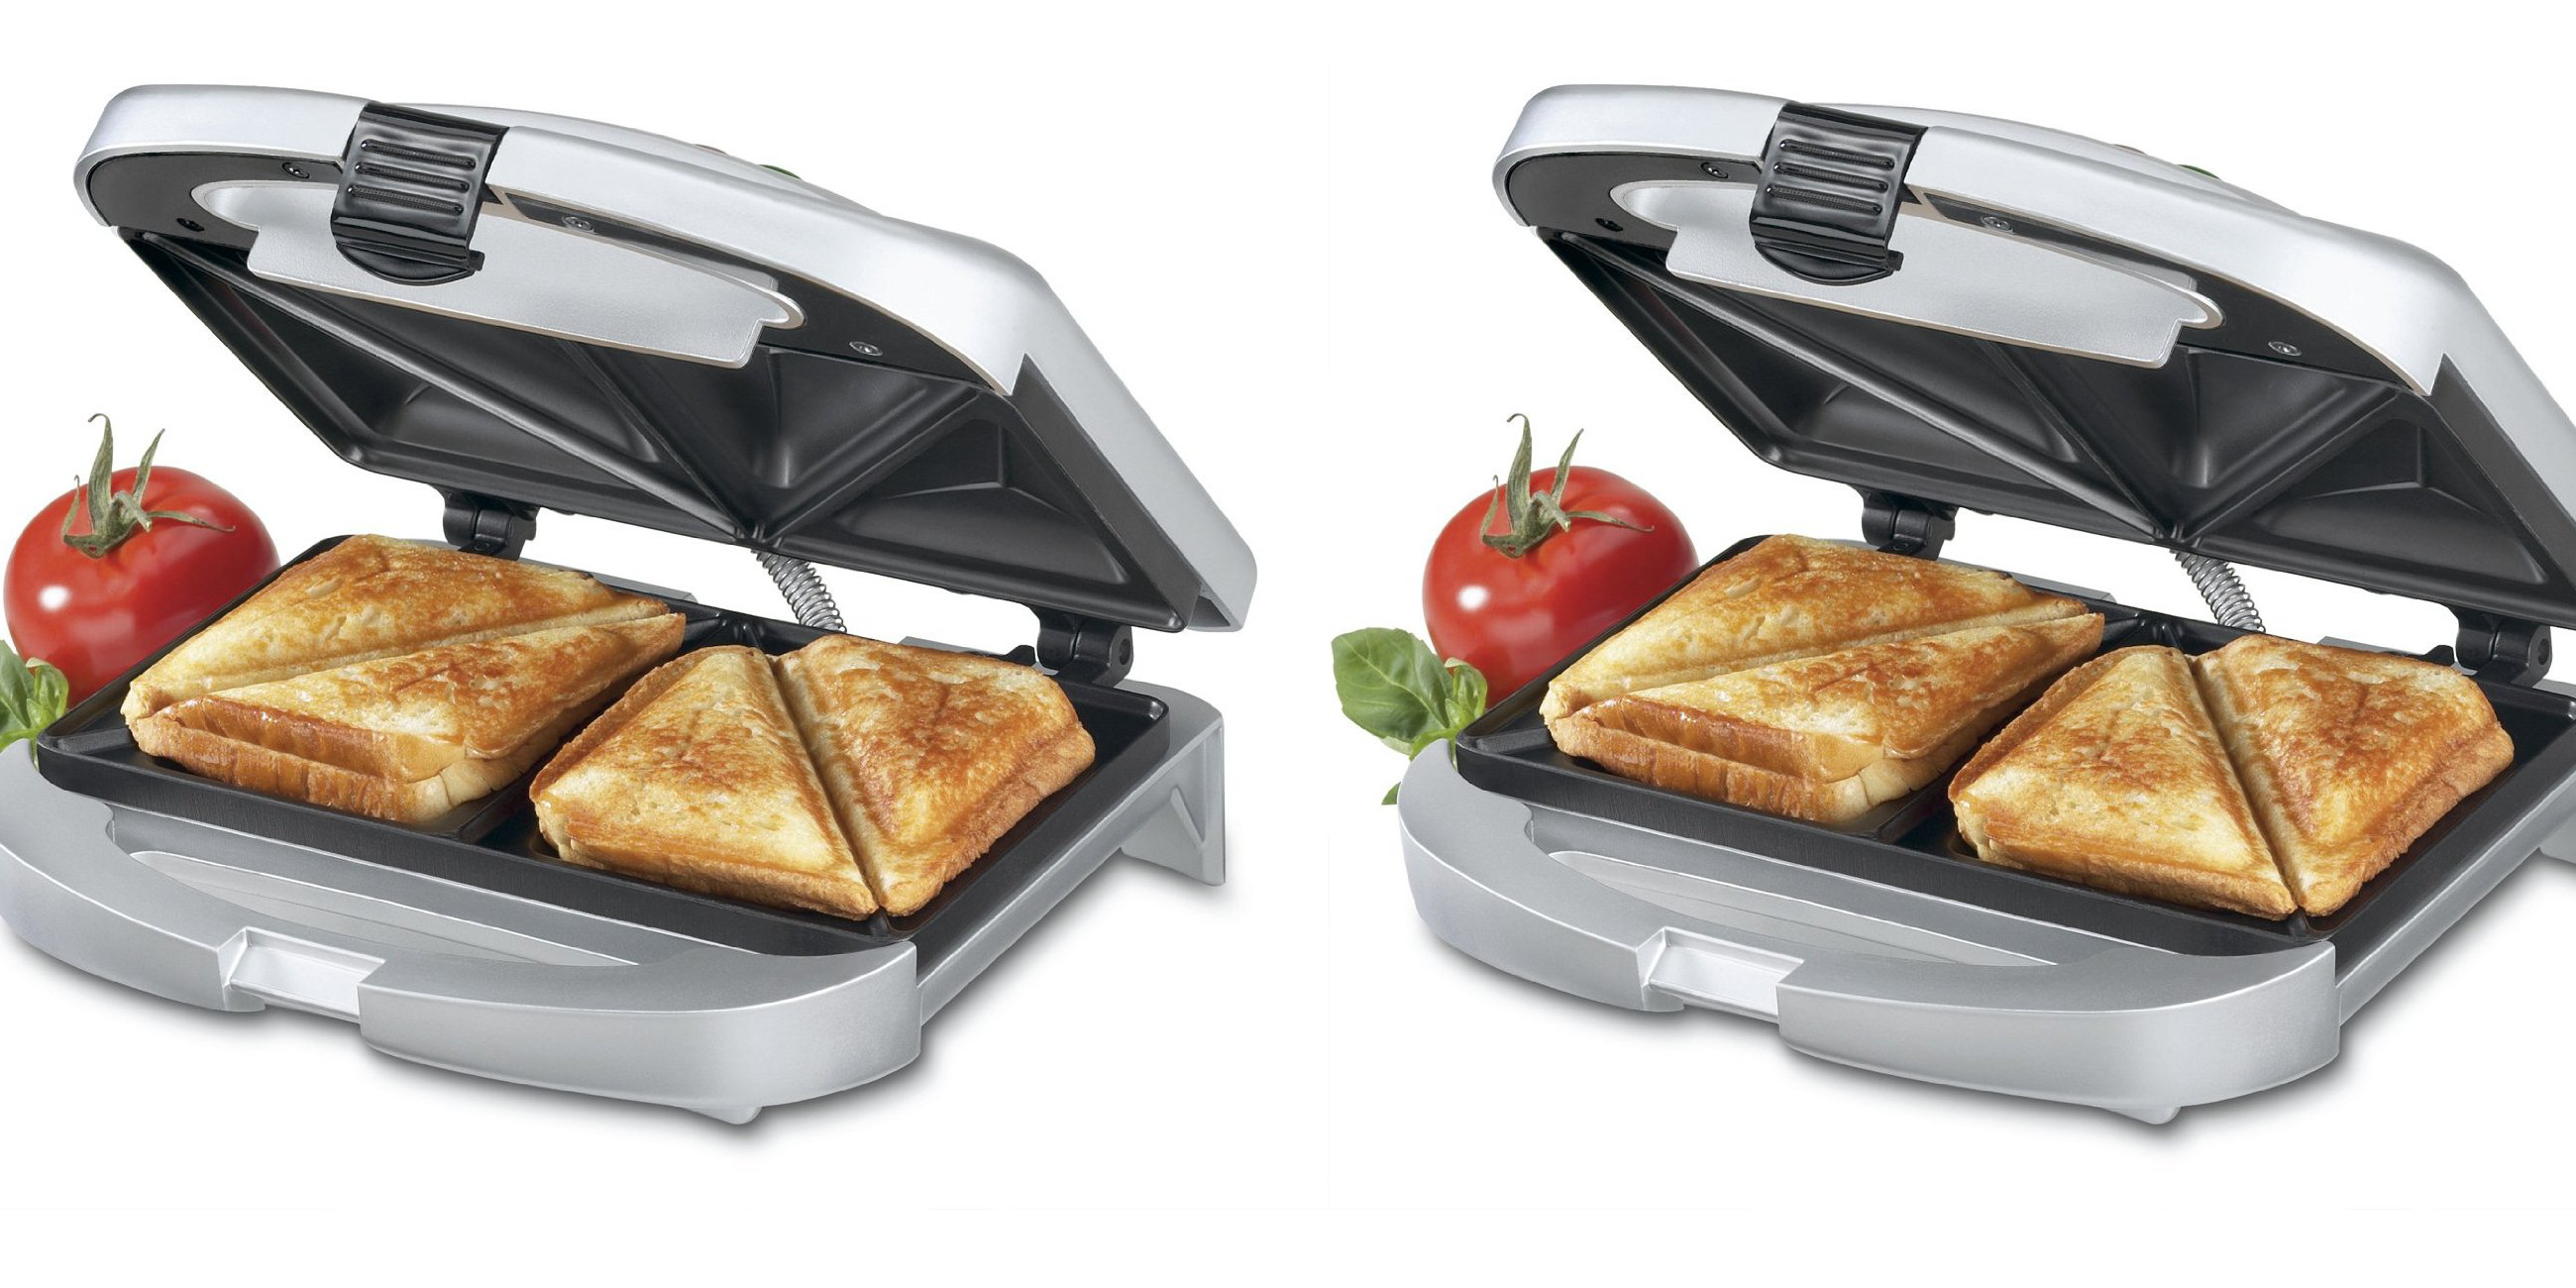 cuisinart-dual-sandwich-nonstick-electric-grill-4